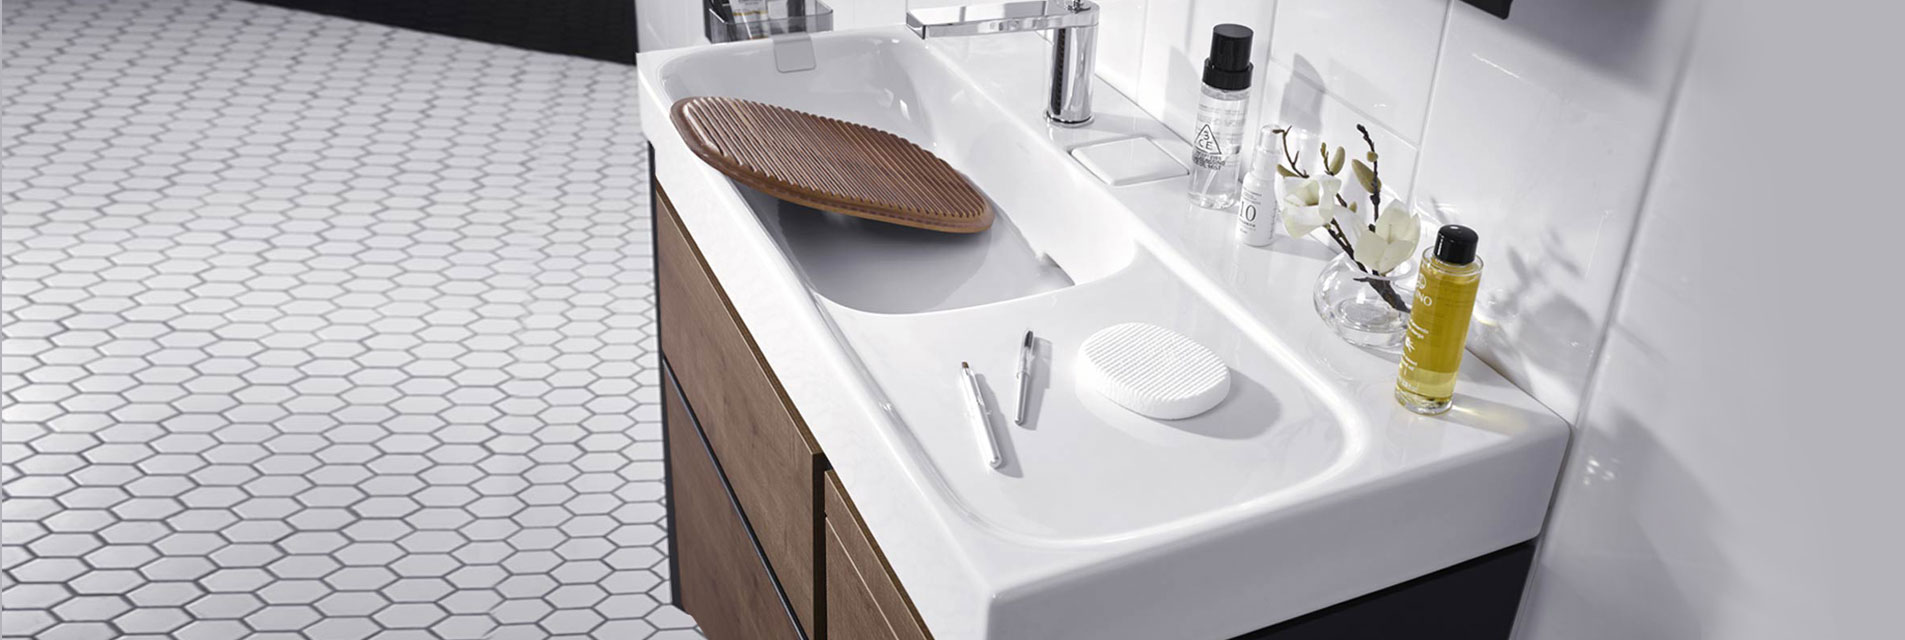 Bathroom Lavatories Buying Guide